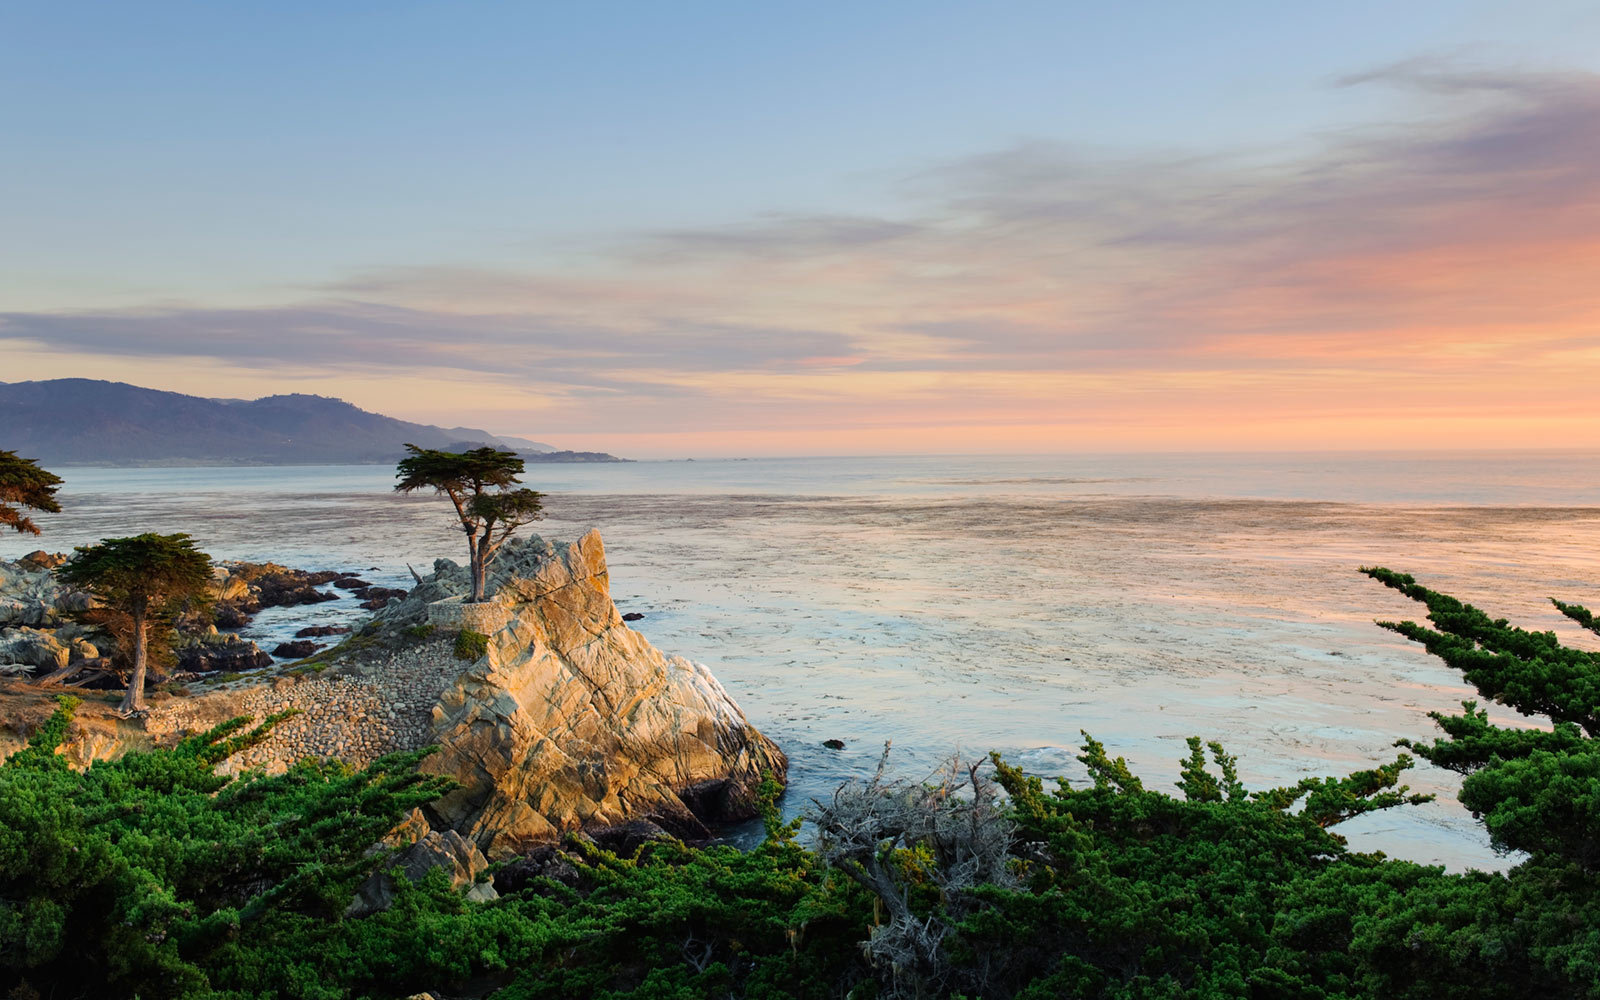 Lone Cypress, 17 mile drive, Pebble Beach, California